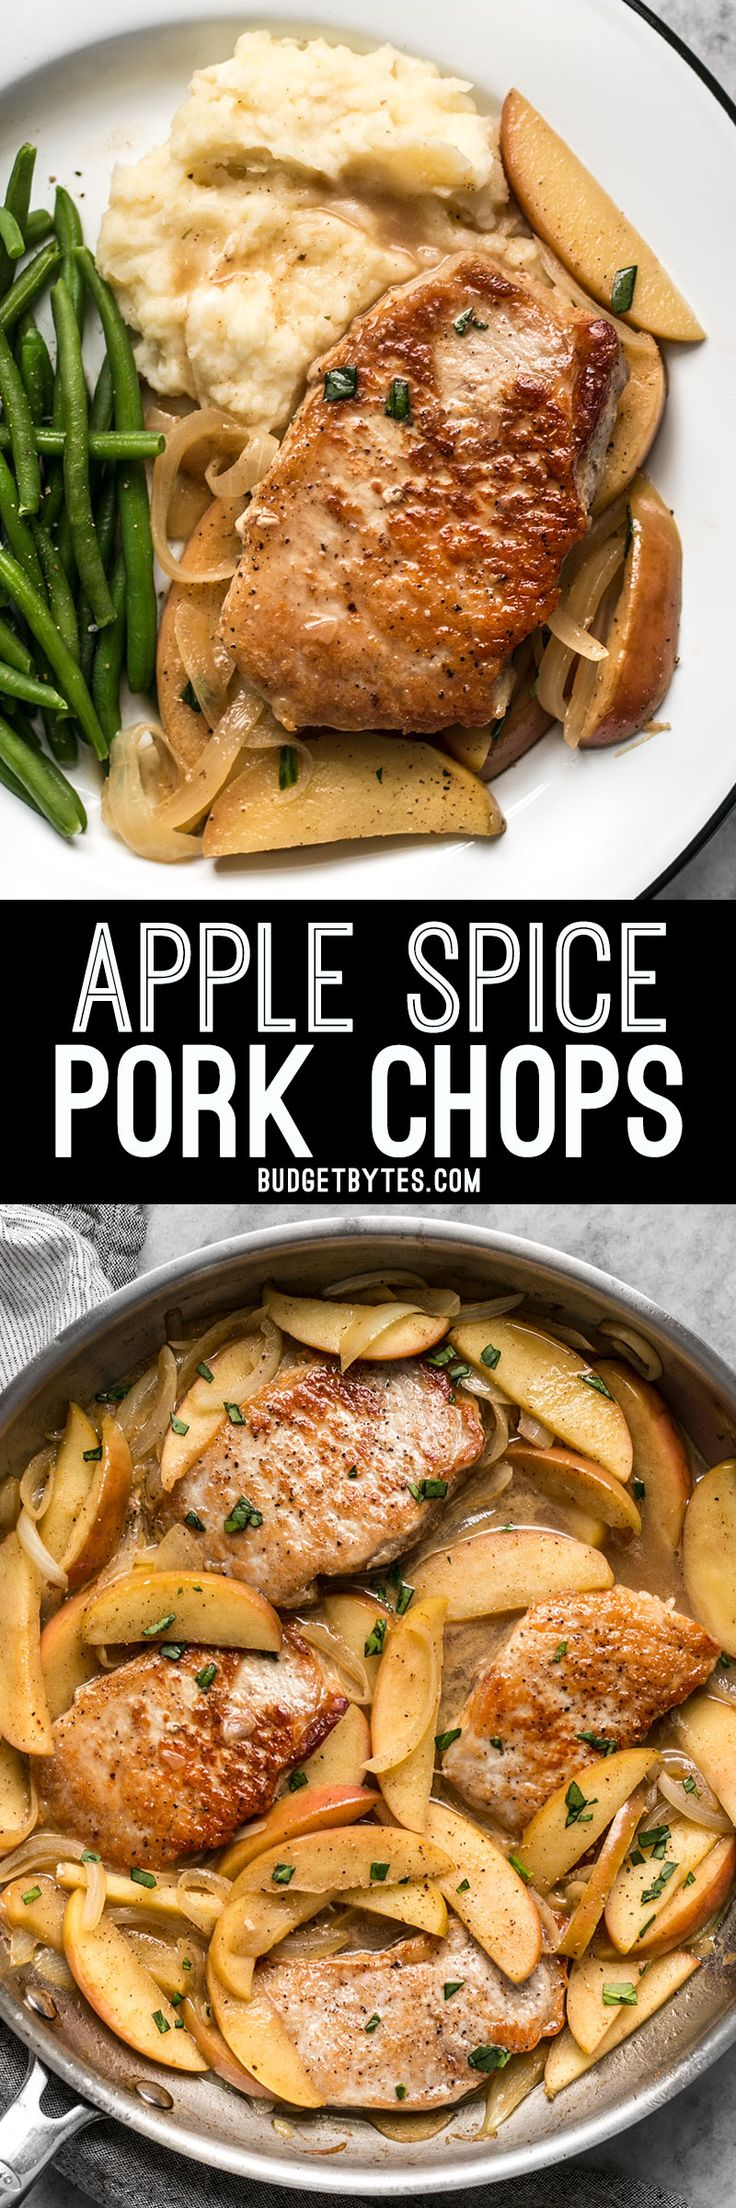 These Apple Spice Pork Chops are smothered with apples, onions, cinnamon, and butter which make a rich, flavorful, sweet, and savory main dish. BudgetBytes.com